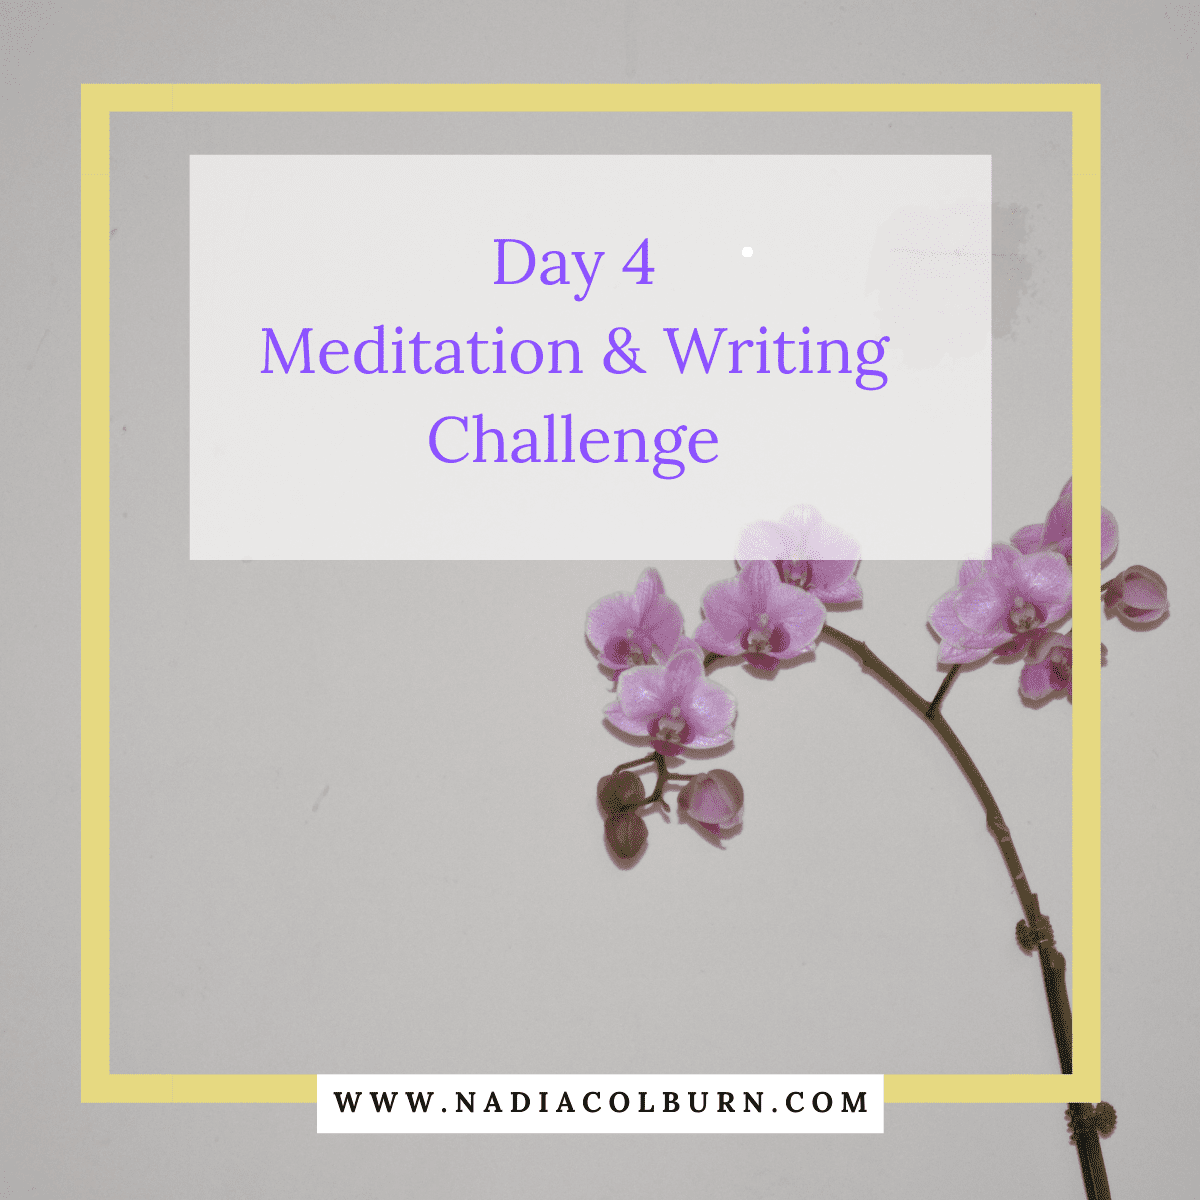 2021 meditation and writing challenge day 5 7